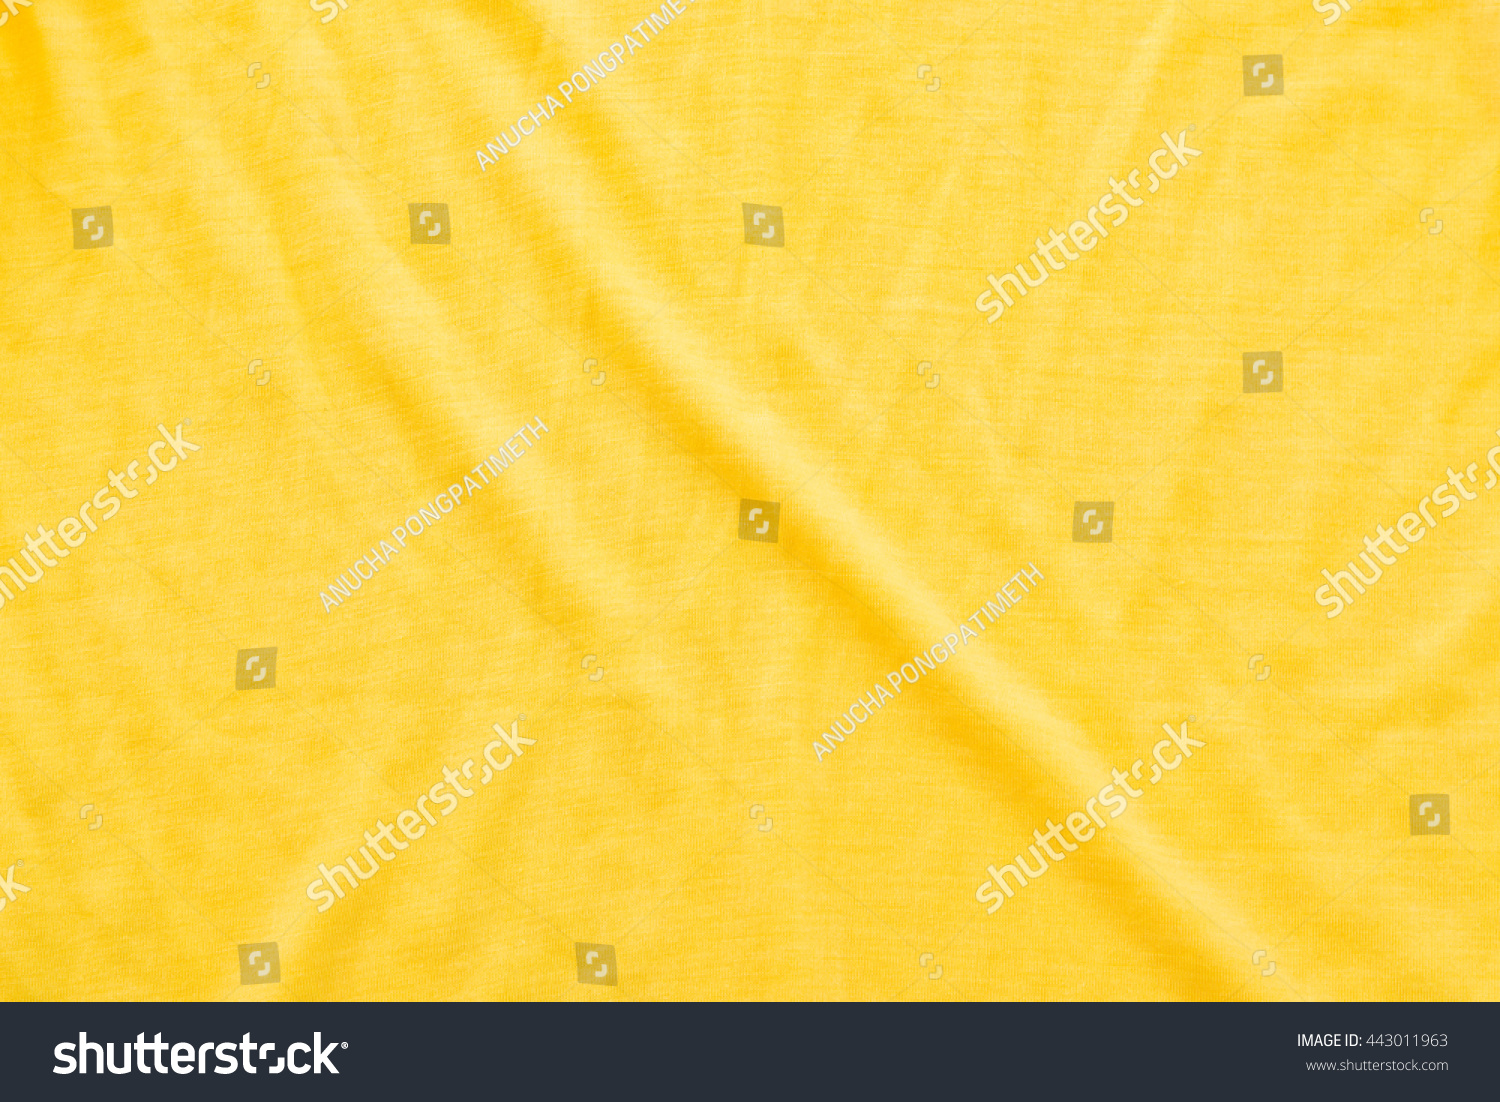 Wrinkled bed sheets texture - Close Up Of Yellow Wrinkled Bed Sheet Textured Background